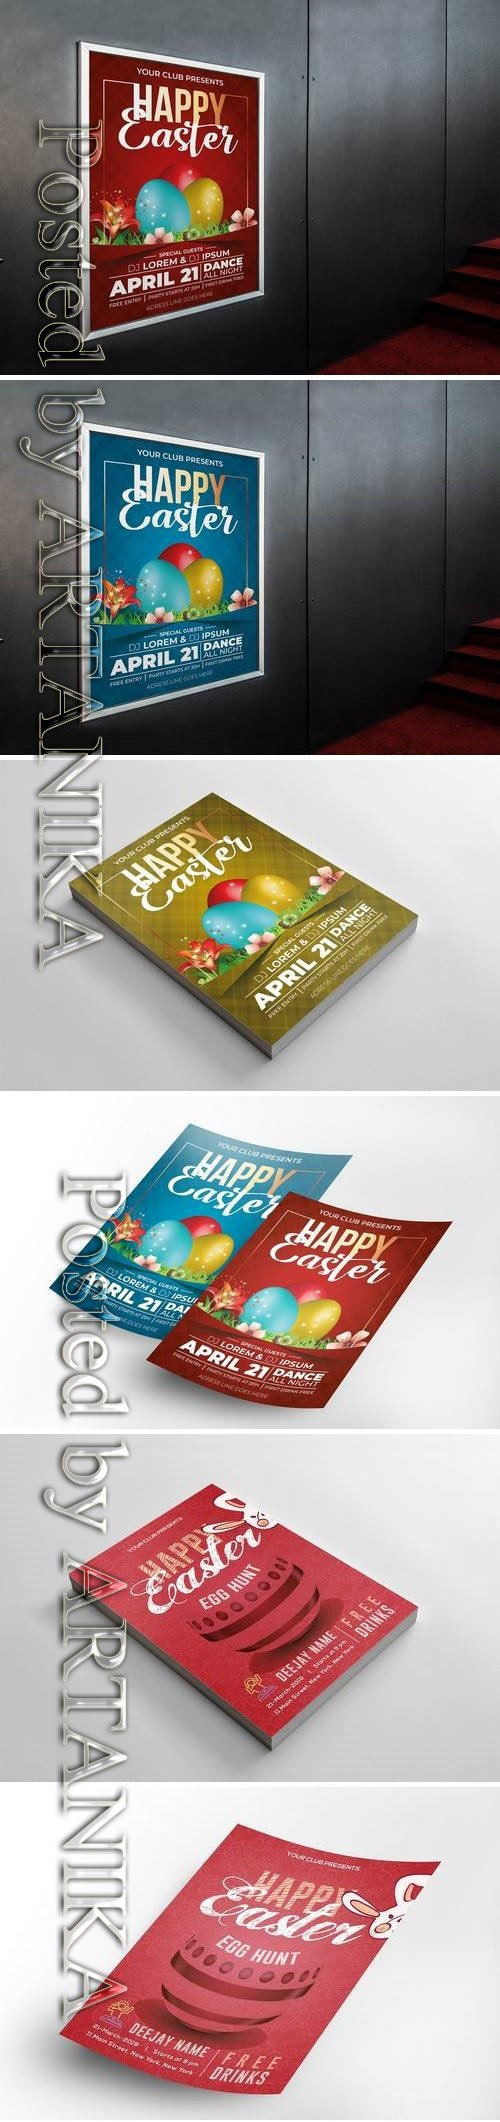 Easter Flyers